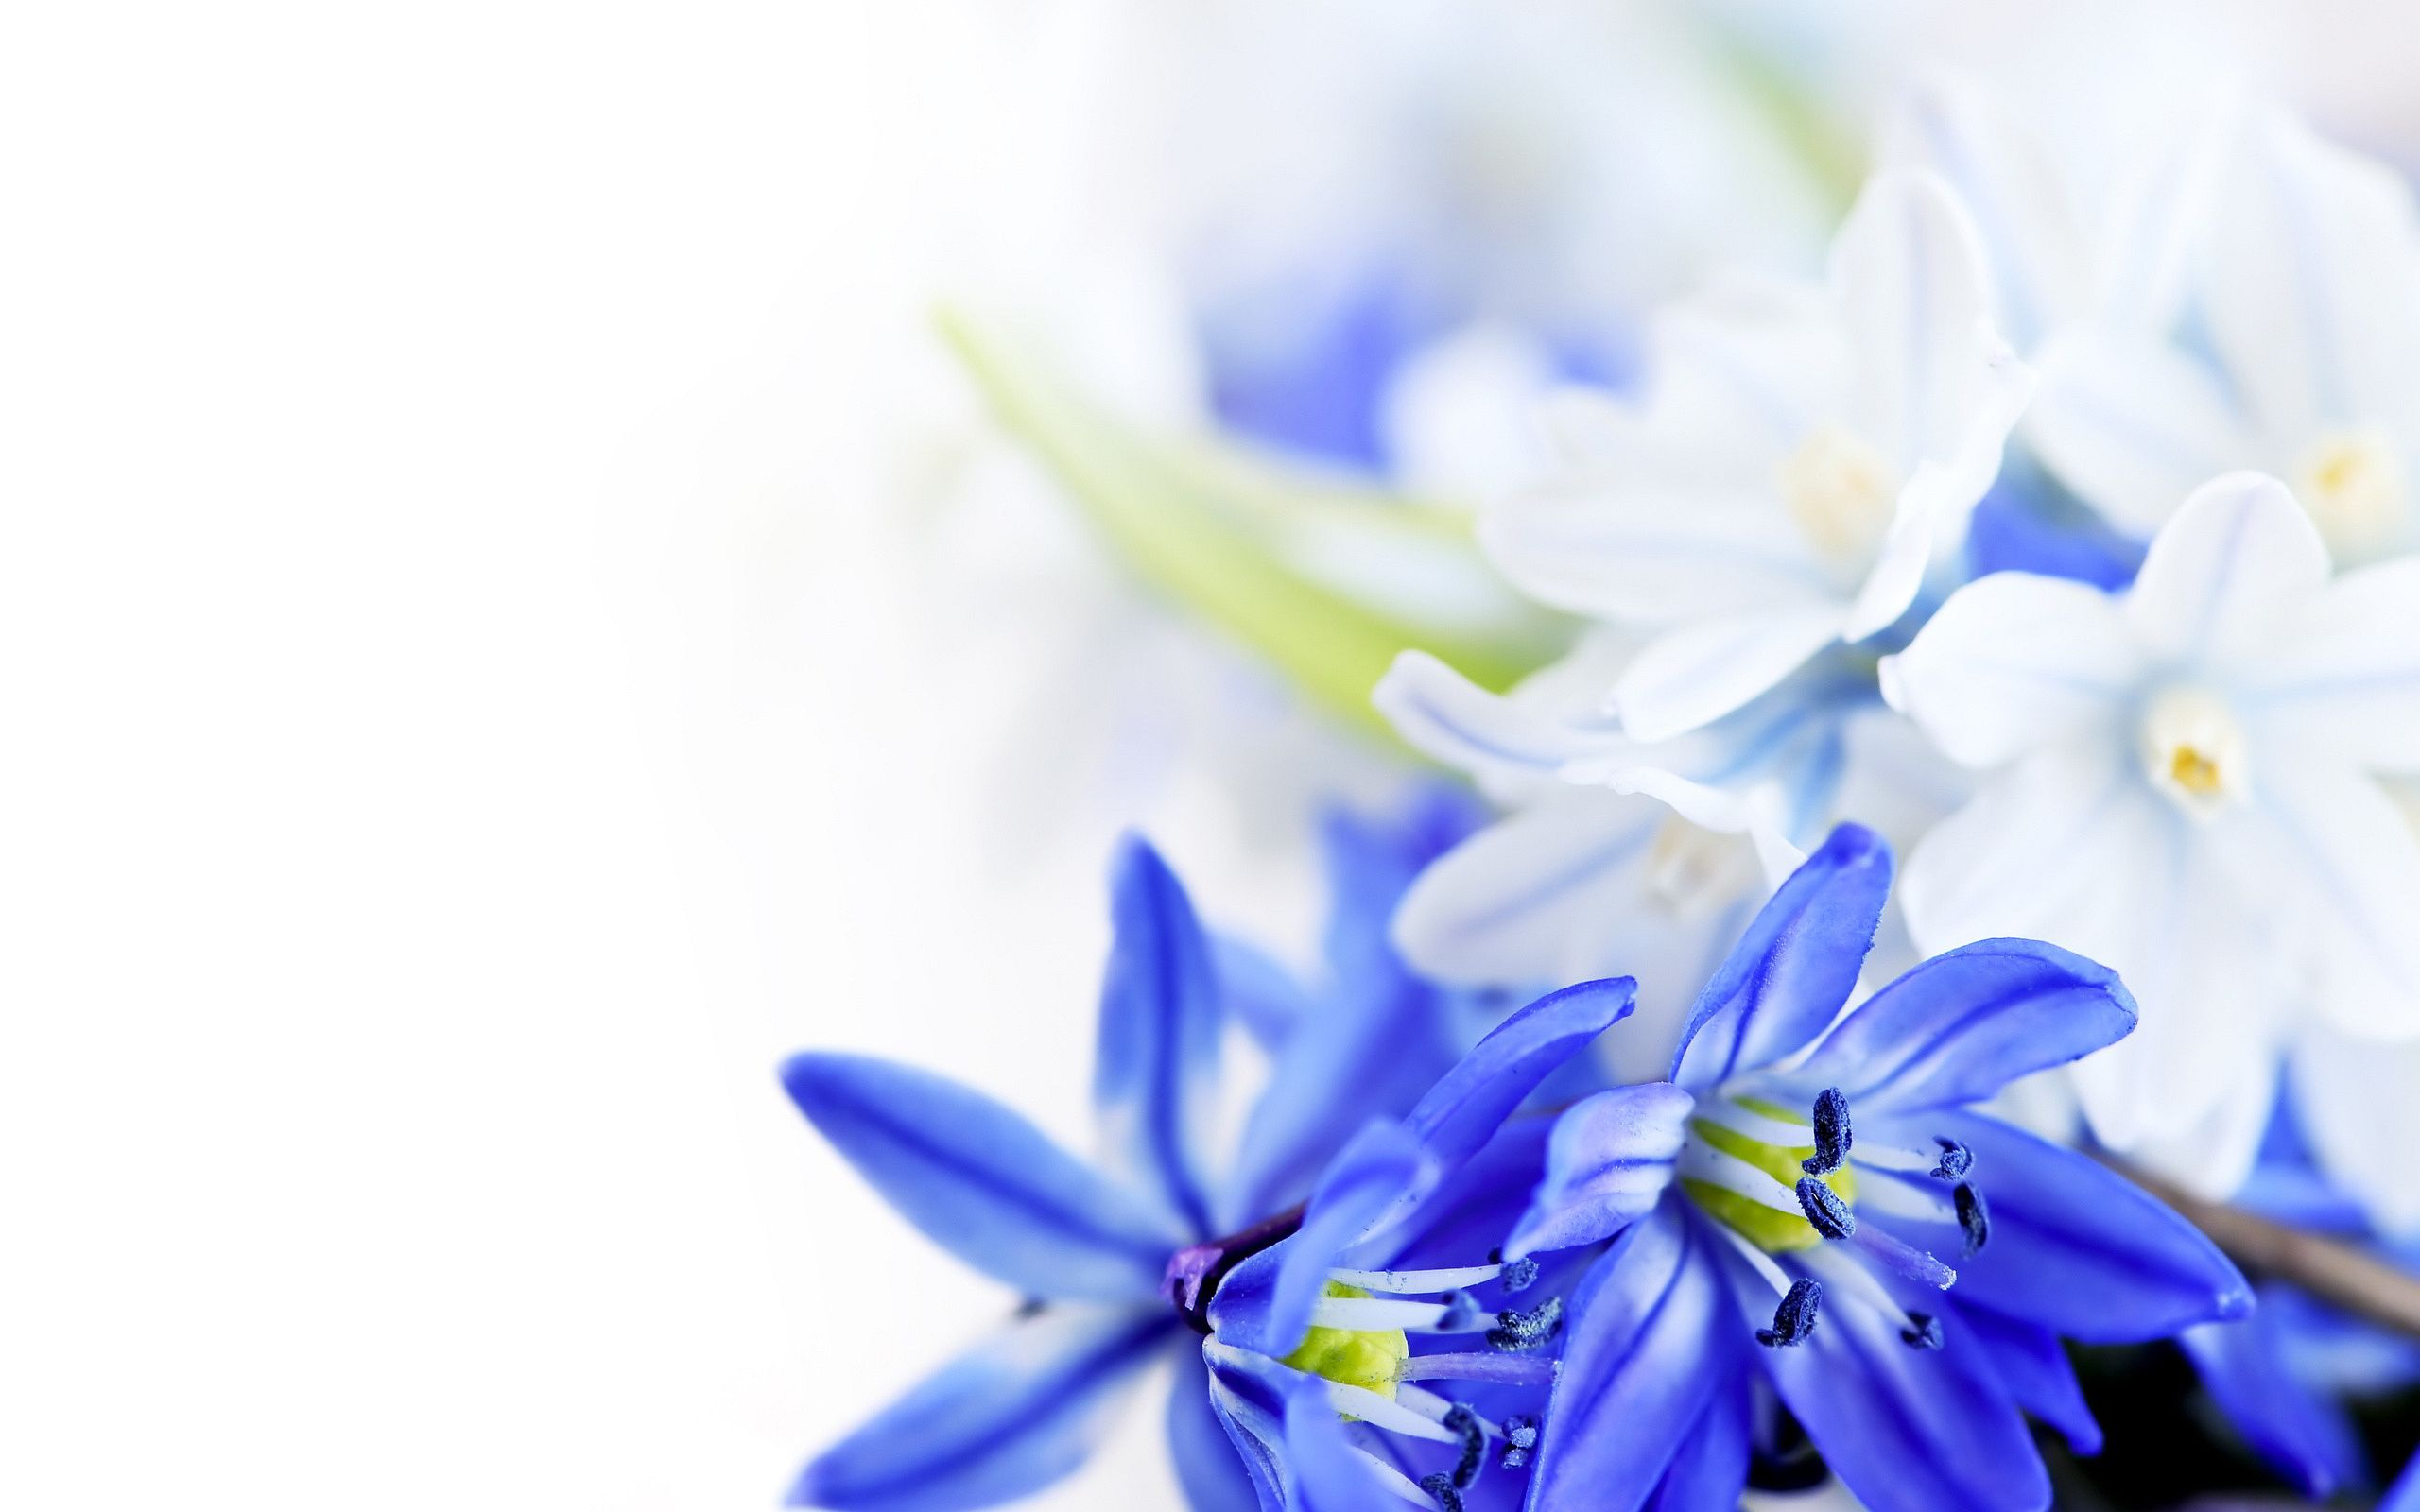 Blue white flowers wallpapers pictures photos images - Flower t wallpaper ...